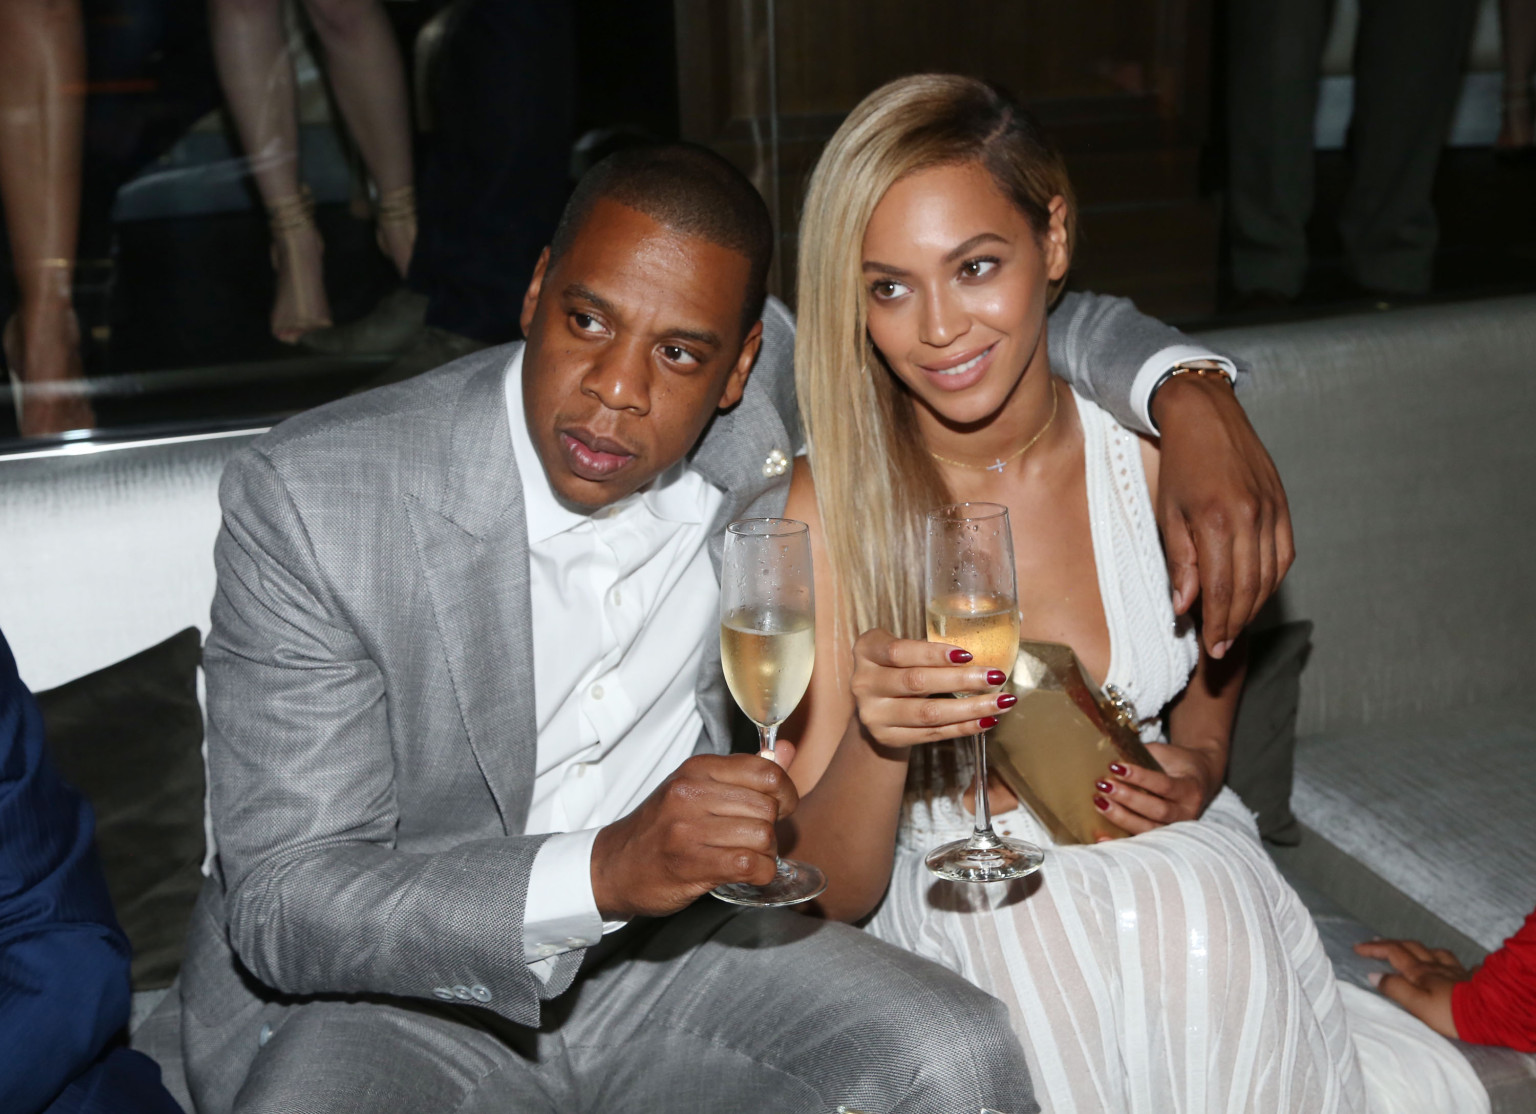 Jay zs part ii on the run is a collaboration with beyonce off jay zs part ii on the run is a collaboration with beyonce off of magna carta holy grail huffpost malvernweather Choice Image